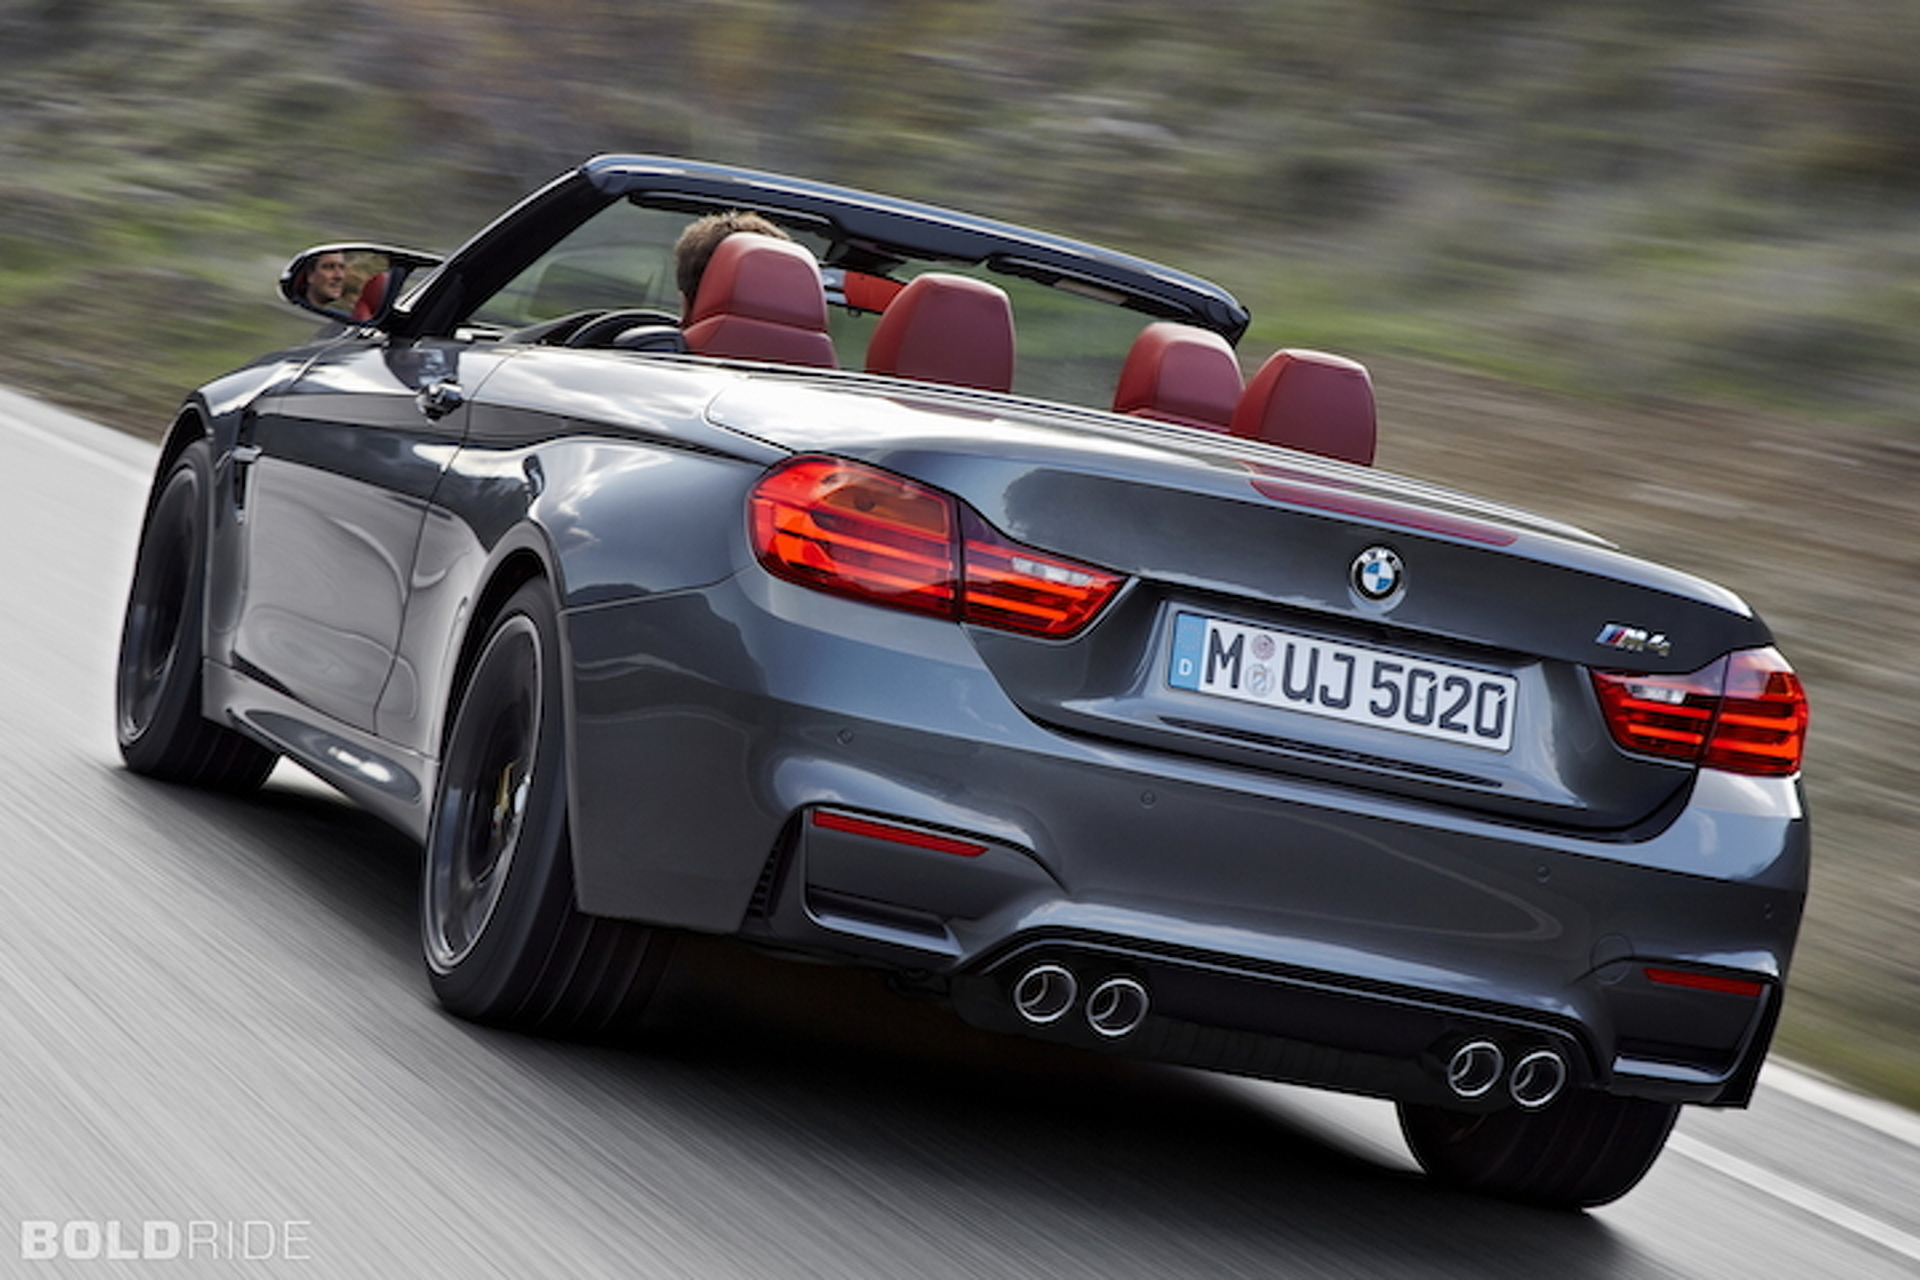 The Bmw M4 Convertible Is 425 Horse Of Drop Top Beauty